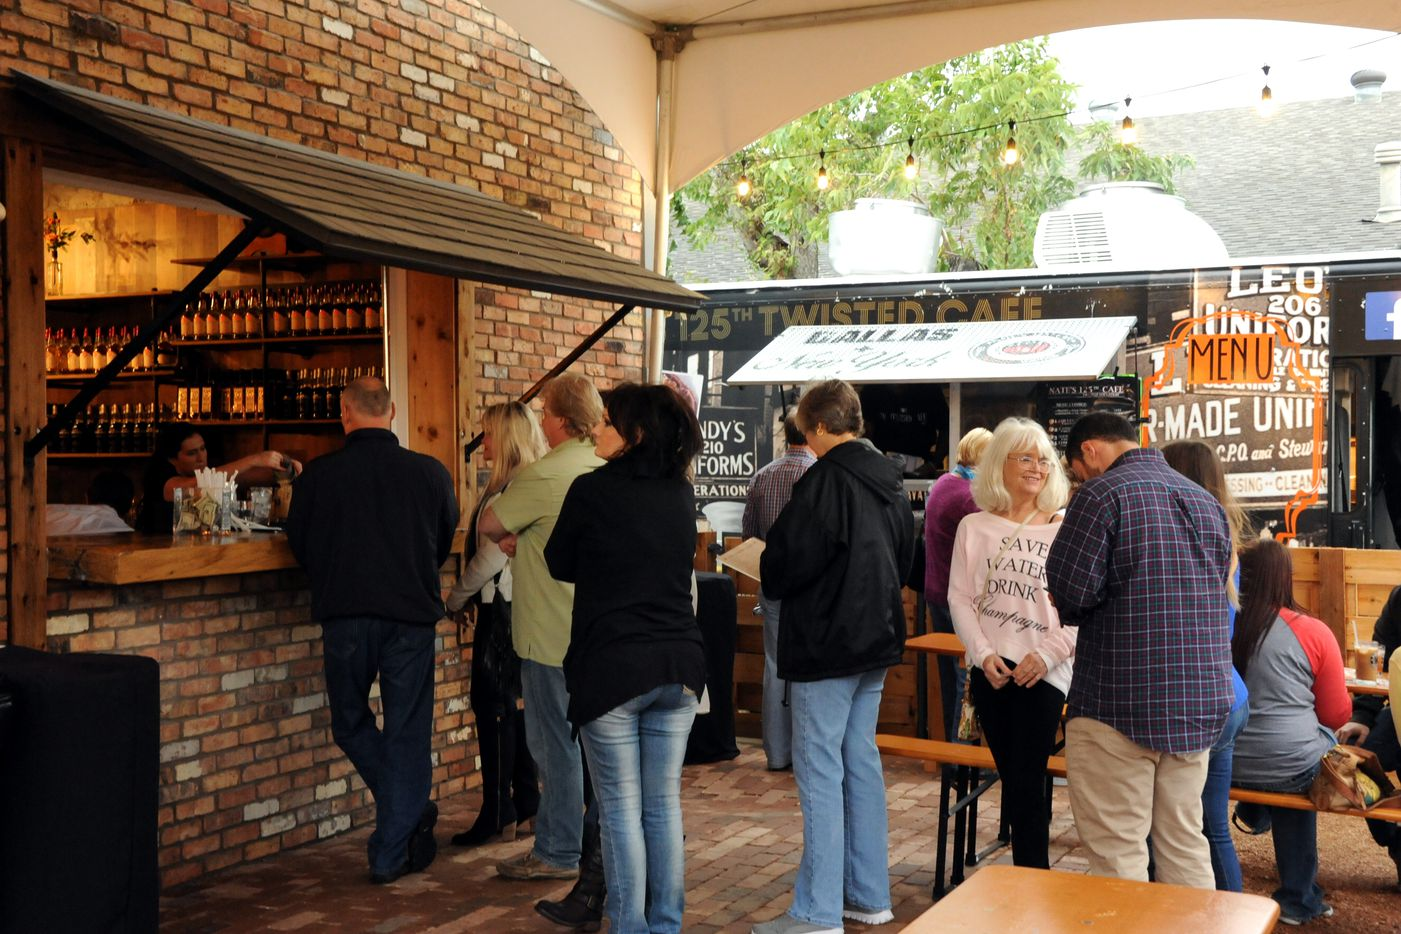 Guests wait in line at the outside bar for specialty cocktails at Witherspoon Distillery in Lewisville, TX on October 24, 2015.